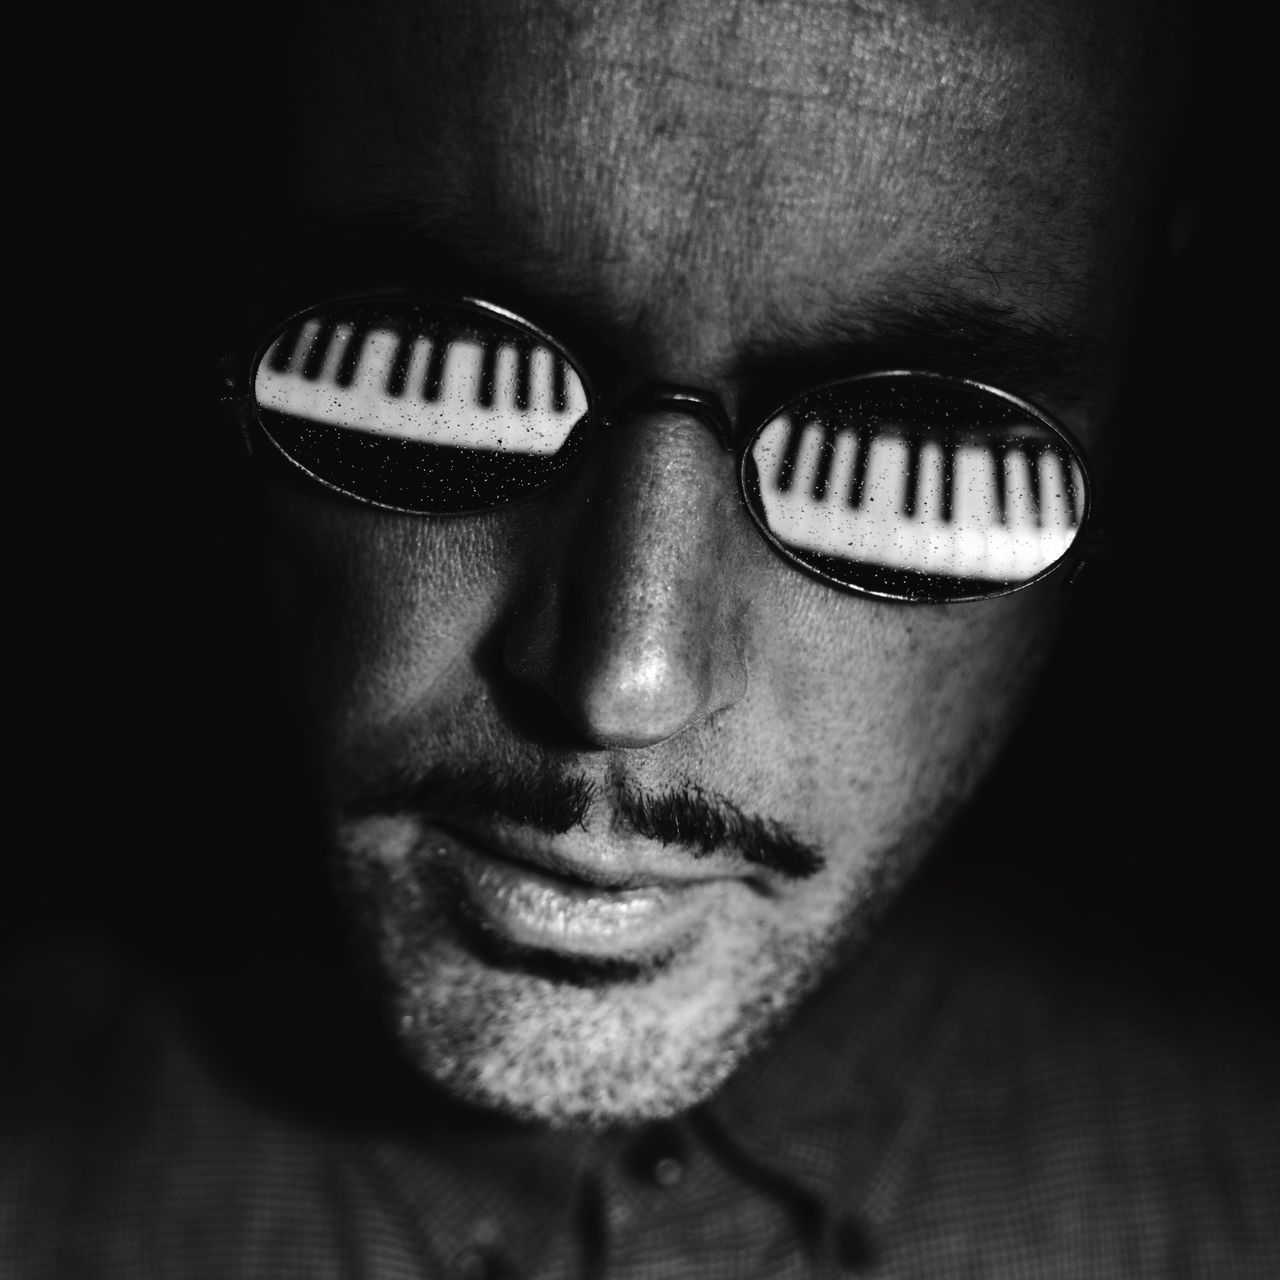 Piano Moments One Man Only Reflection Eyeglasses  Blackandwhite Photography Sunglasses Black & White Blackandwhite Reflection_collection Black And White Pianist Reflections Keyboard Piano Keys EyeEm Best Shots Piano Portrait One Person Close-up